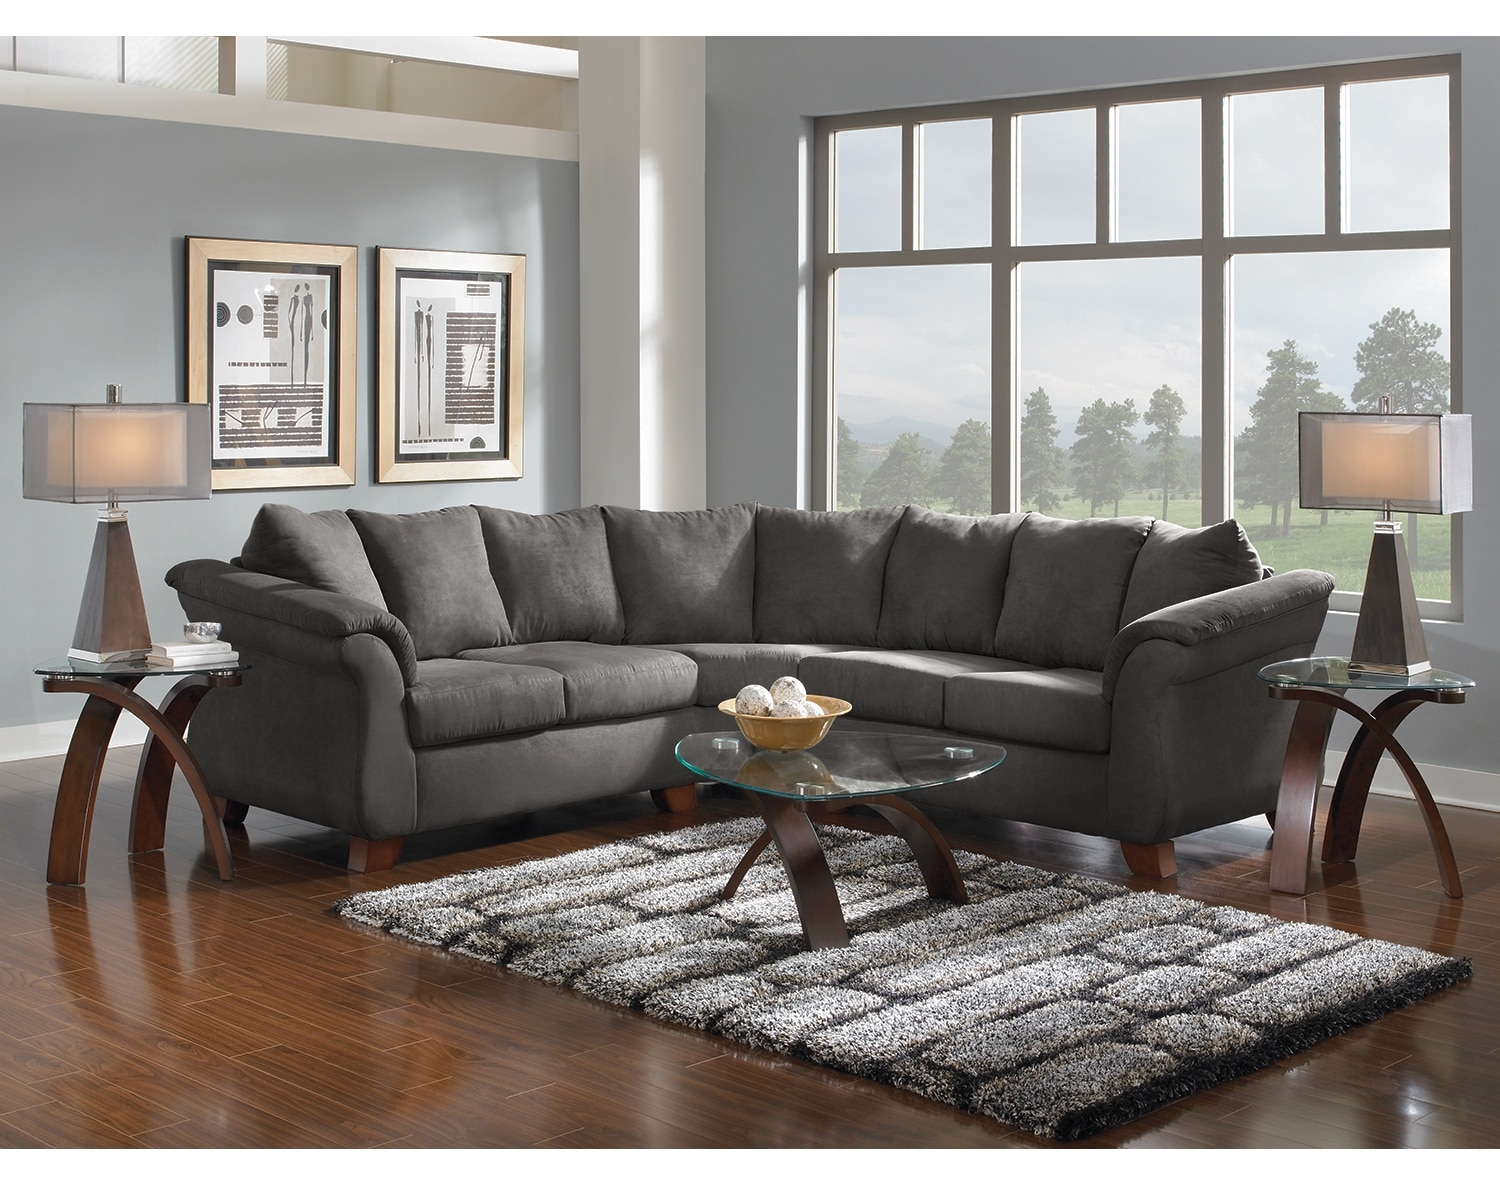 best seller - living room furniture - value city furniture | value